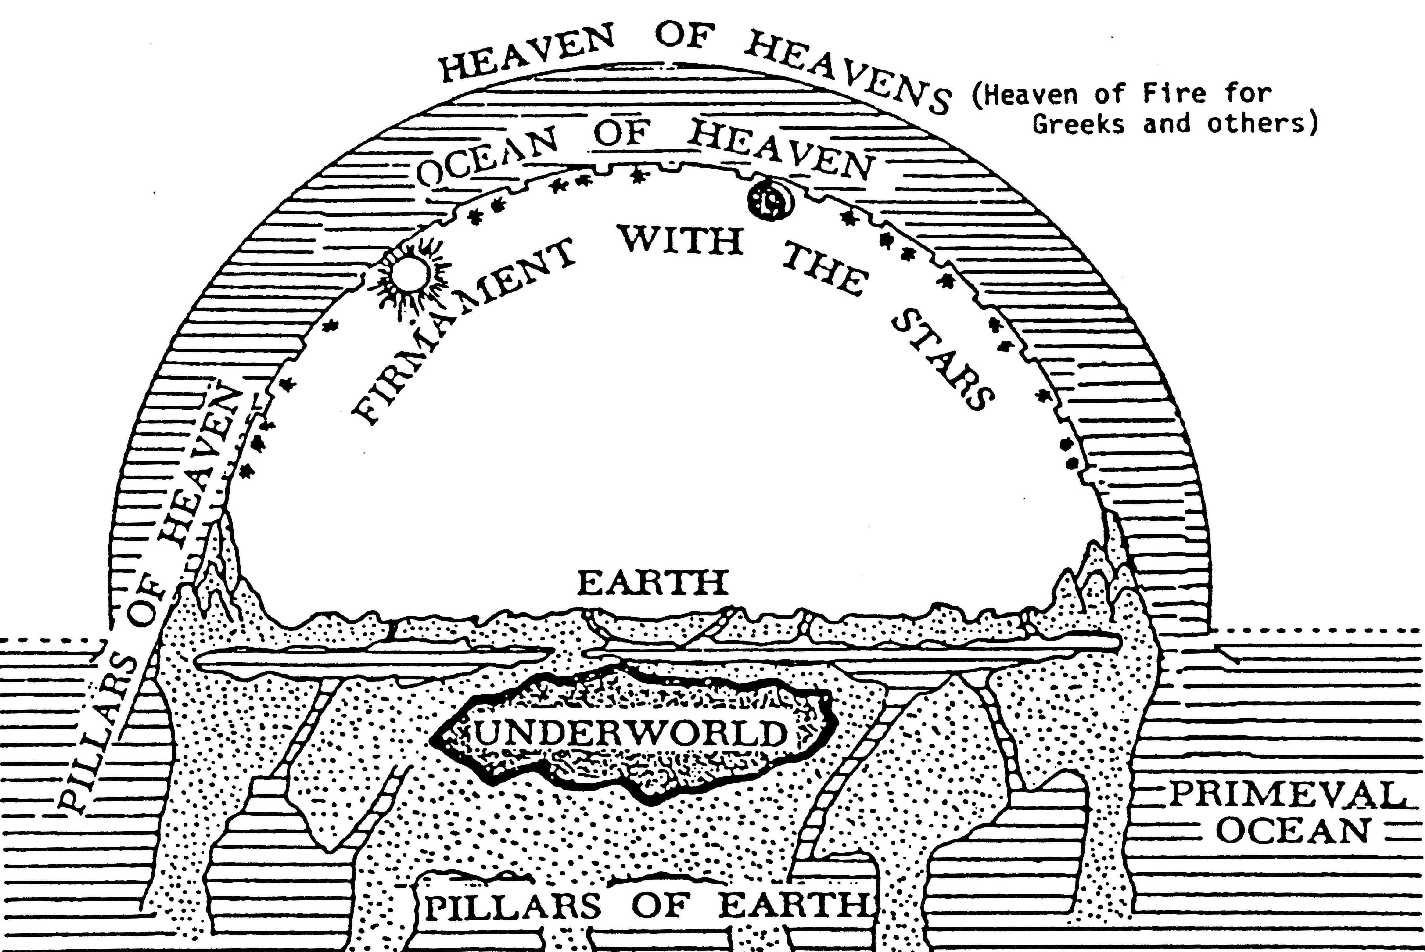 God in Christianity: the Creator of heaven and earth